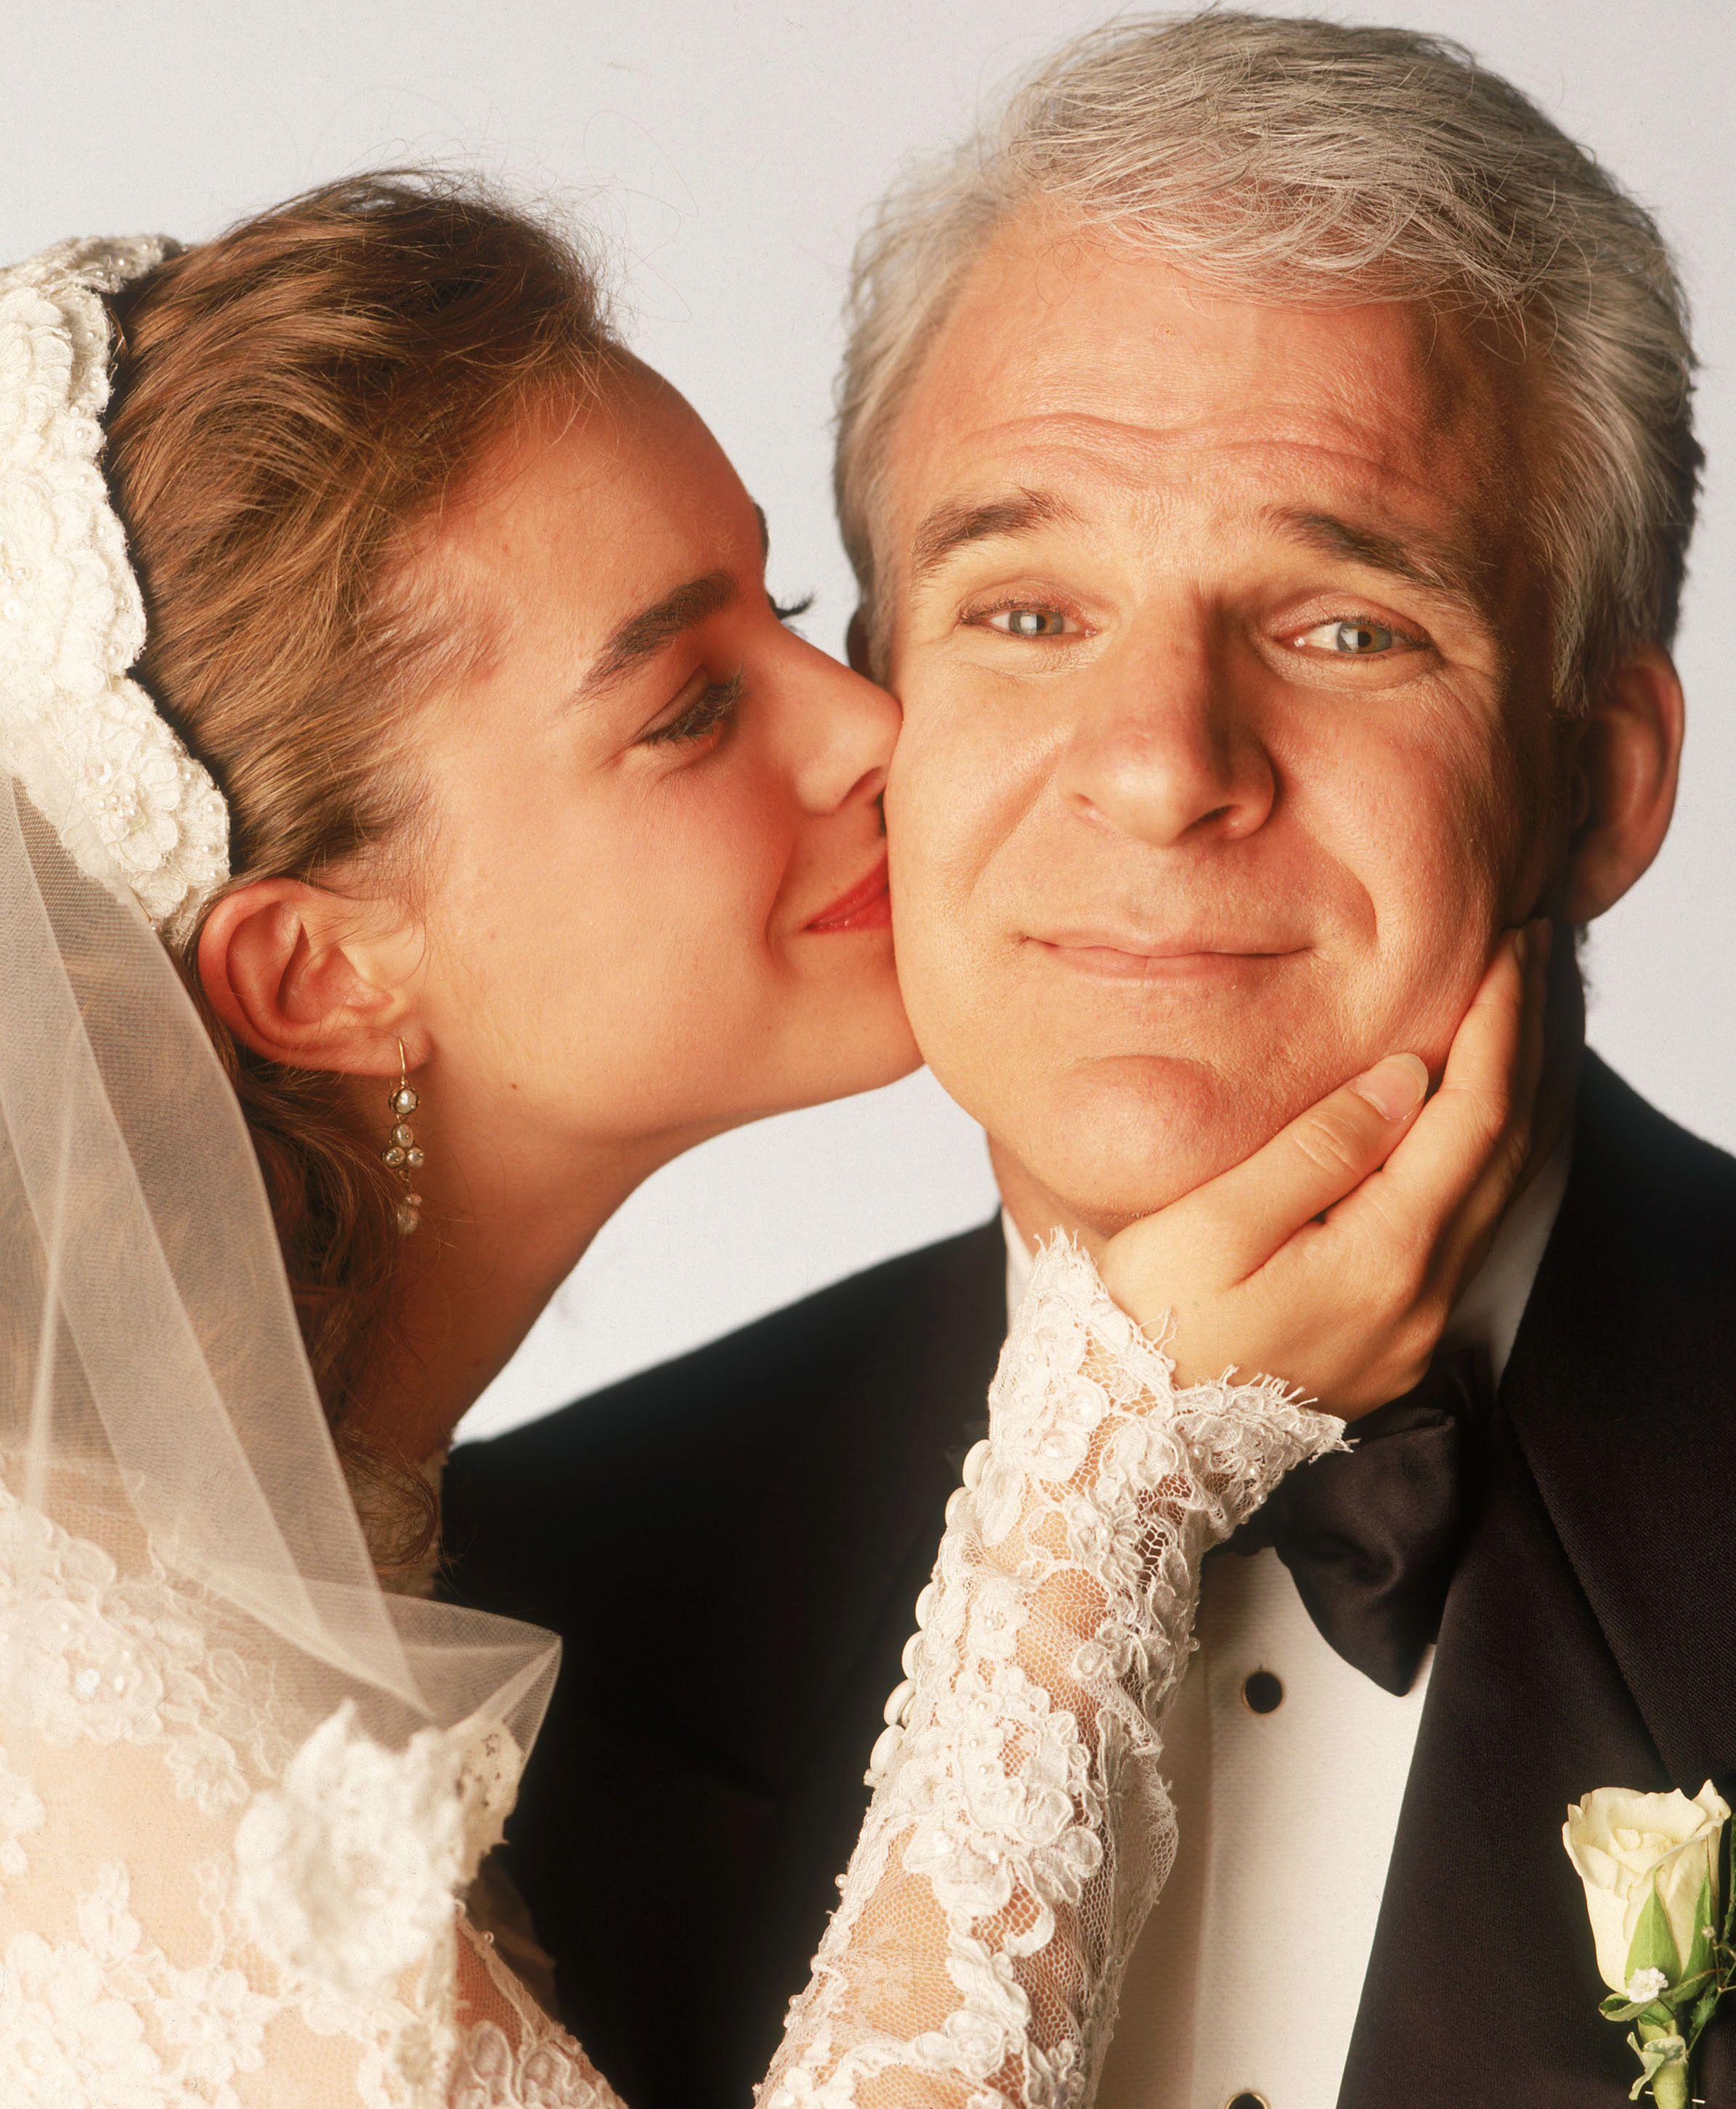 Watch Father of the Bride cast reunite for a new wedding ... |Father Of The Bride Cast